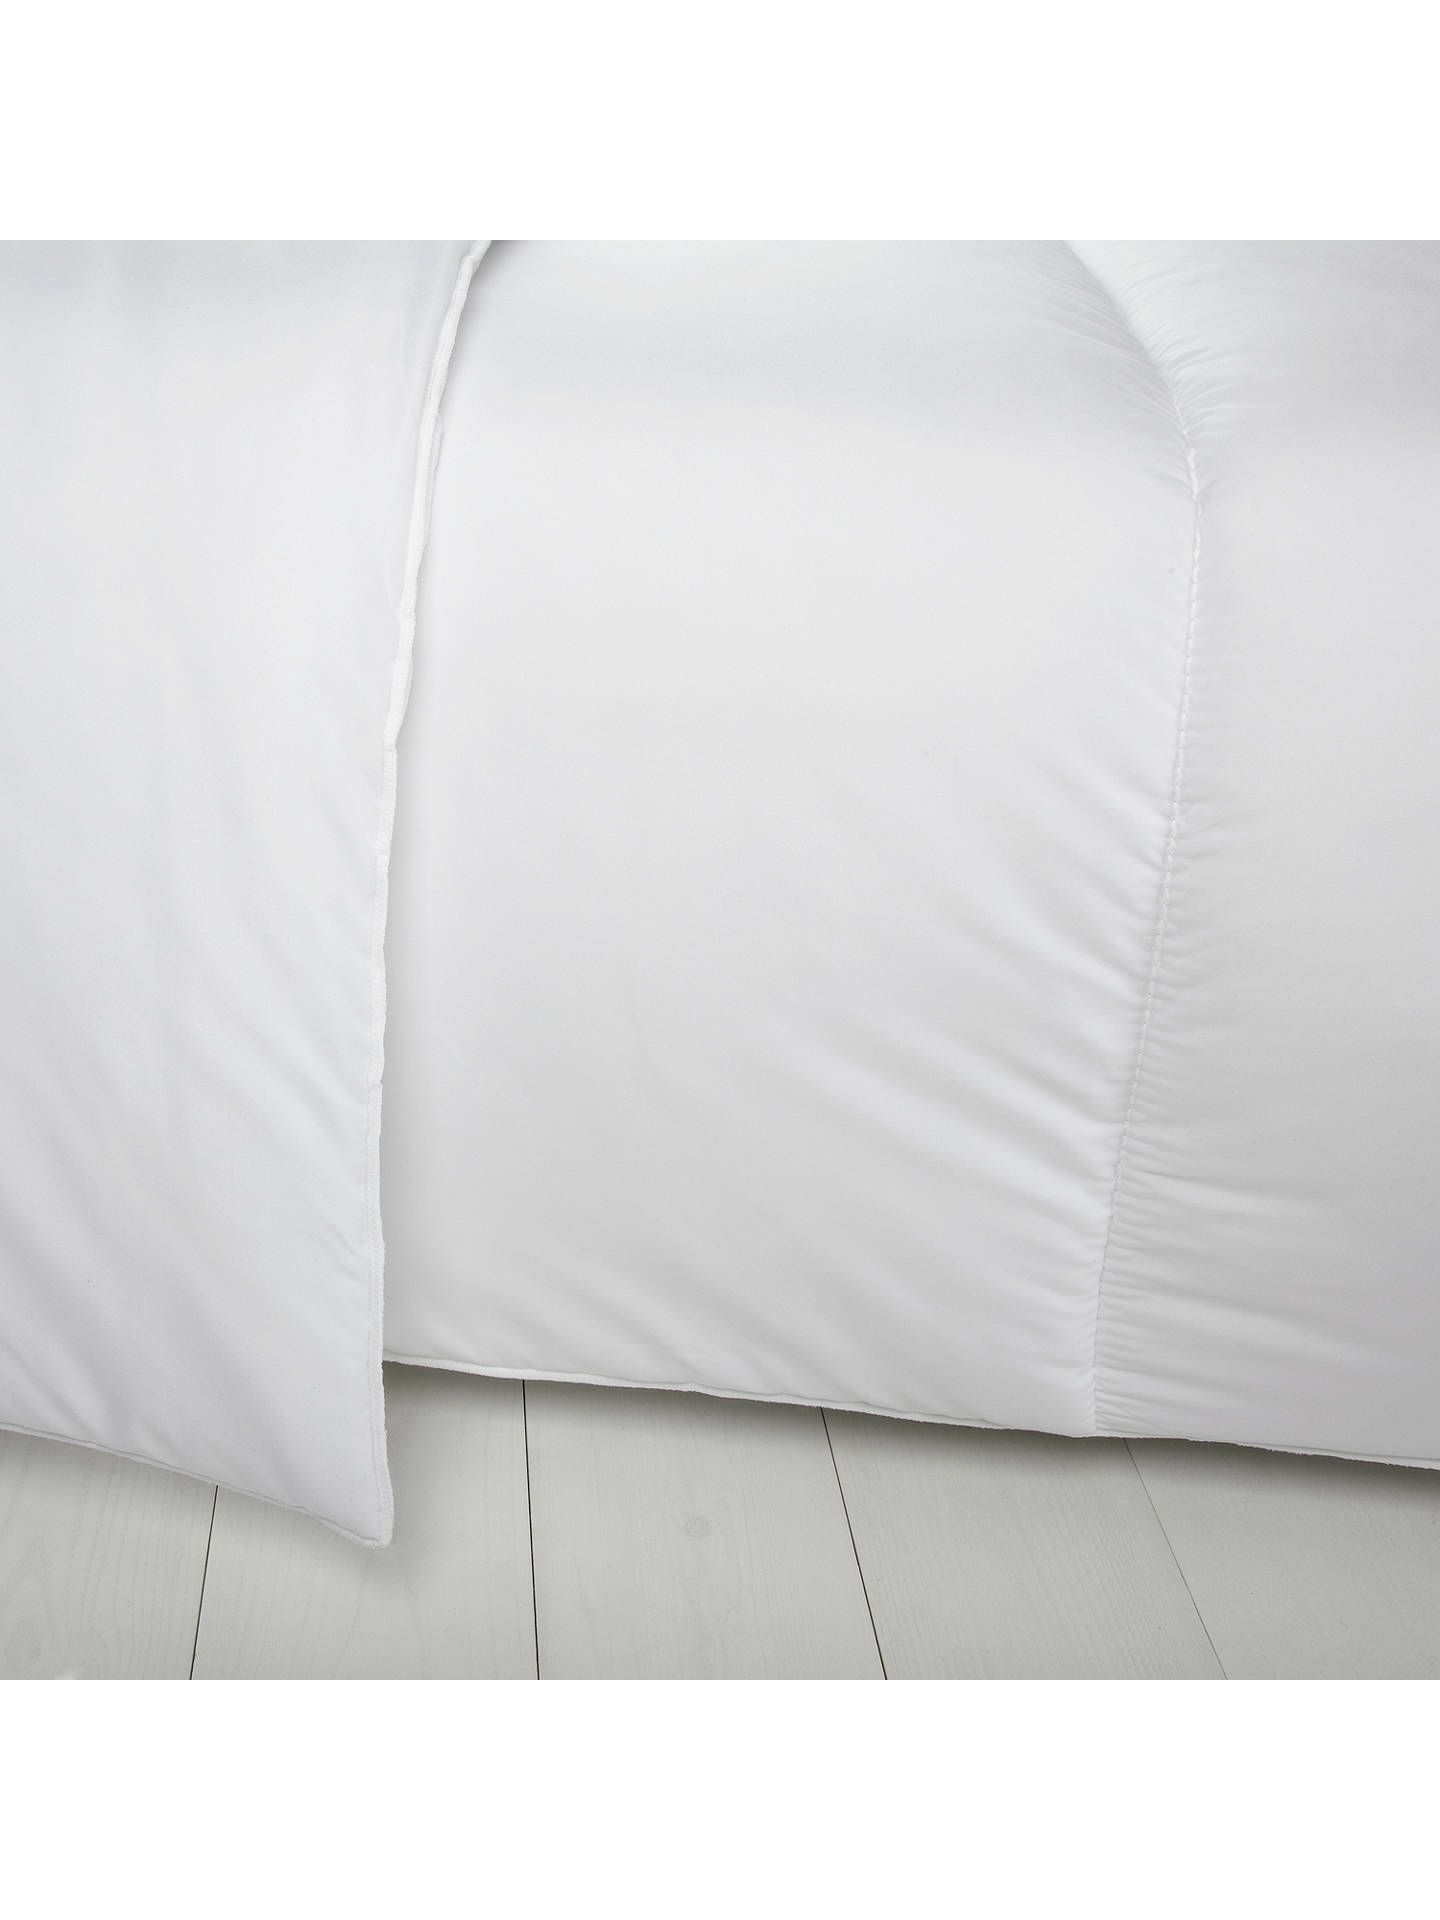 Buylittle home at John Lewis Hollowfibre Duvet, Pillow and Mattress Protector Set, 7 Tog Online at johnlewis.com